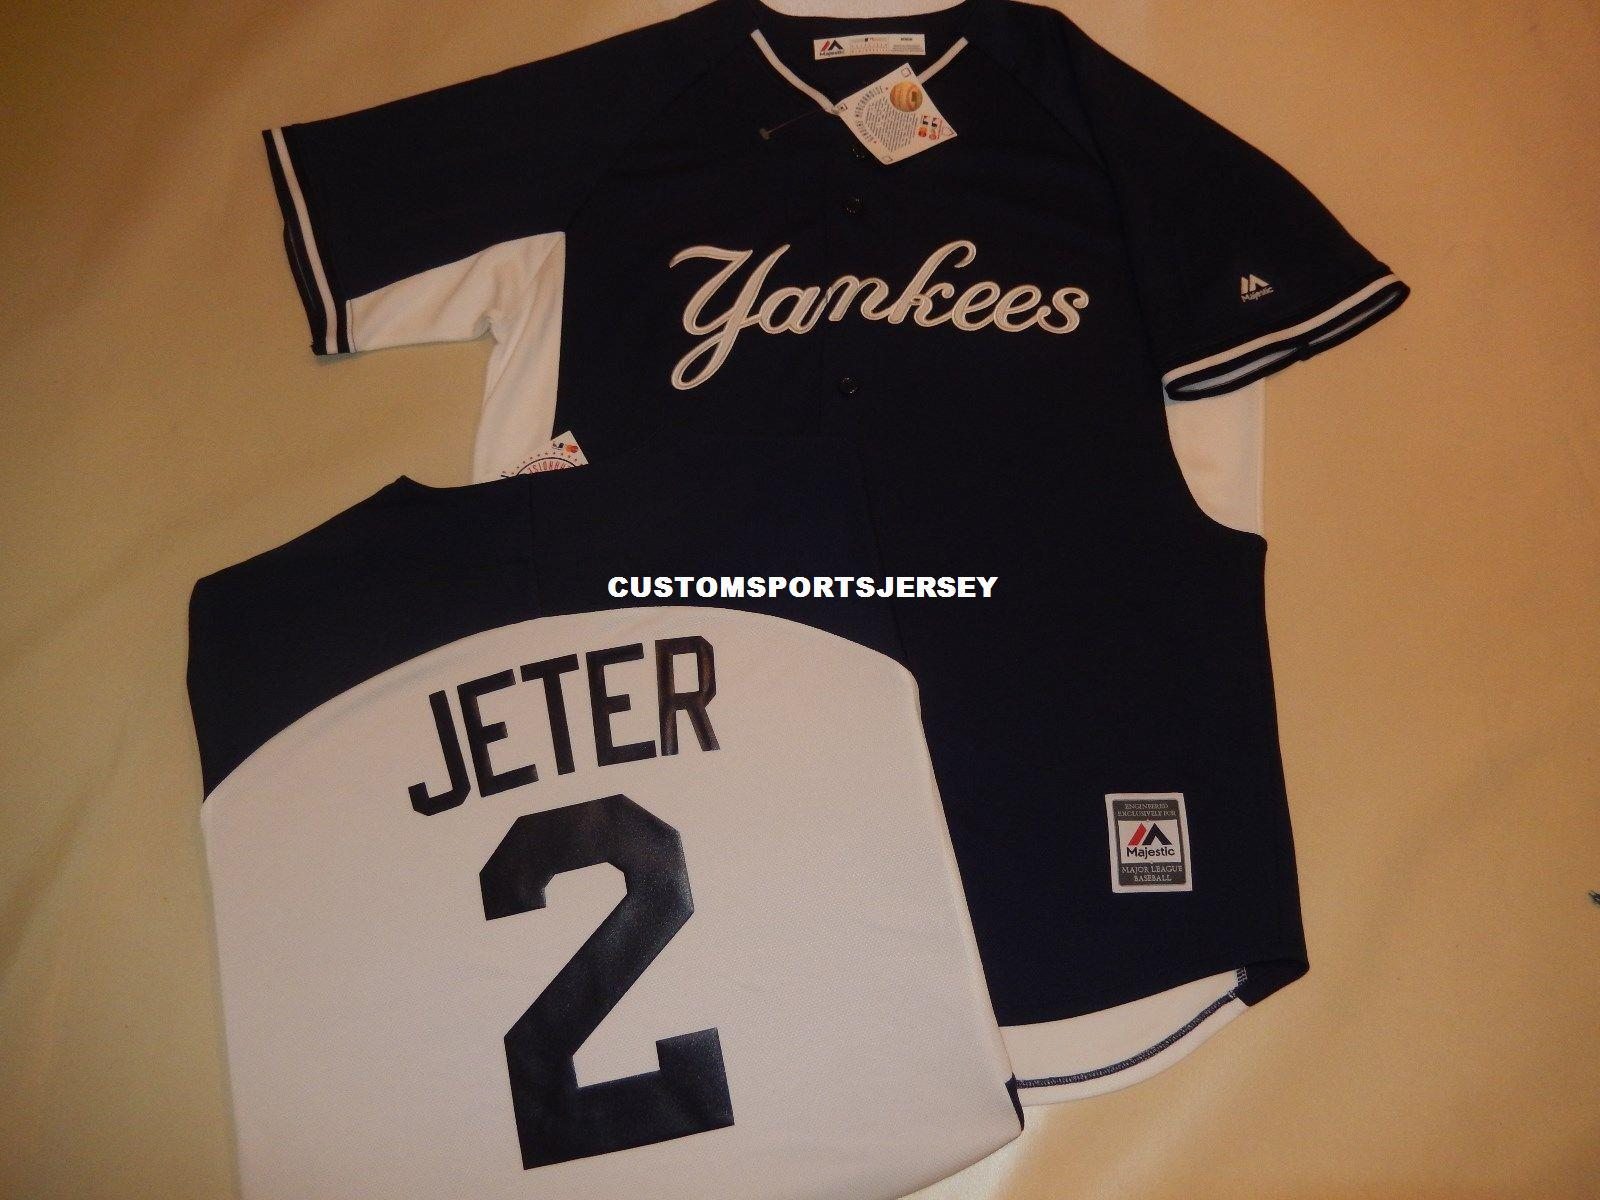 2019 Cheap Custom DEREK JETER Baseball Jersey BLUE New Stitched Customize  Any Name Number MEN WOMEN BASEBALL JERSEY XS 5XL From Customsportsjersey ef0dc8c41eb